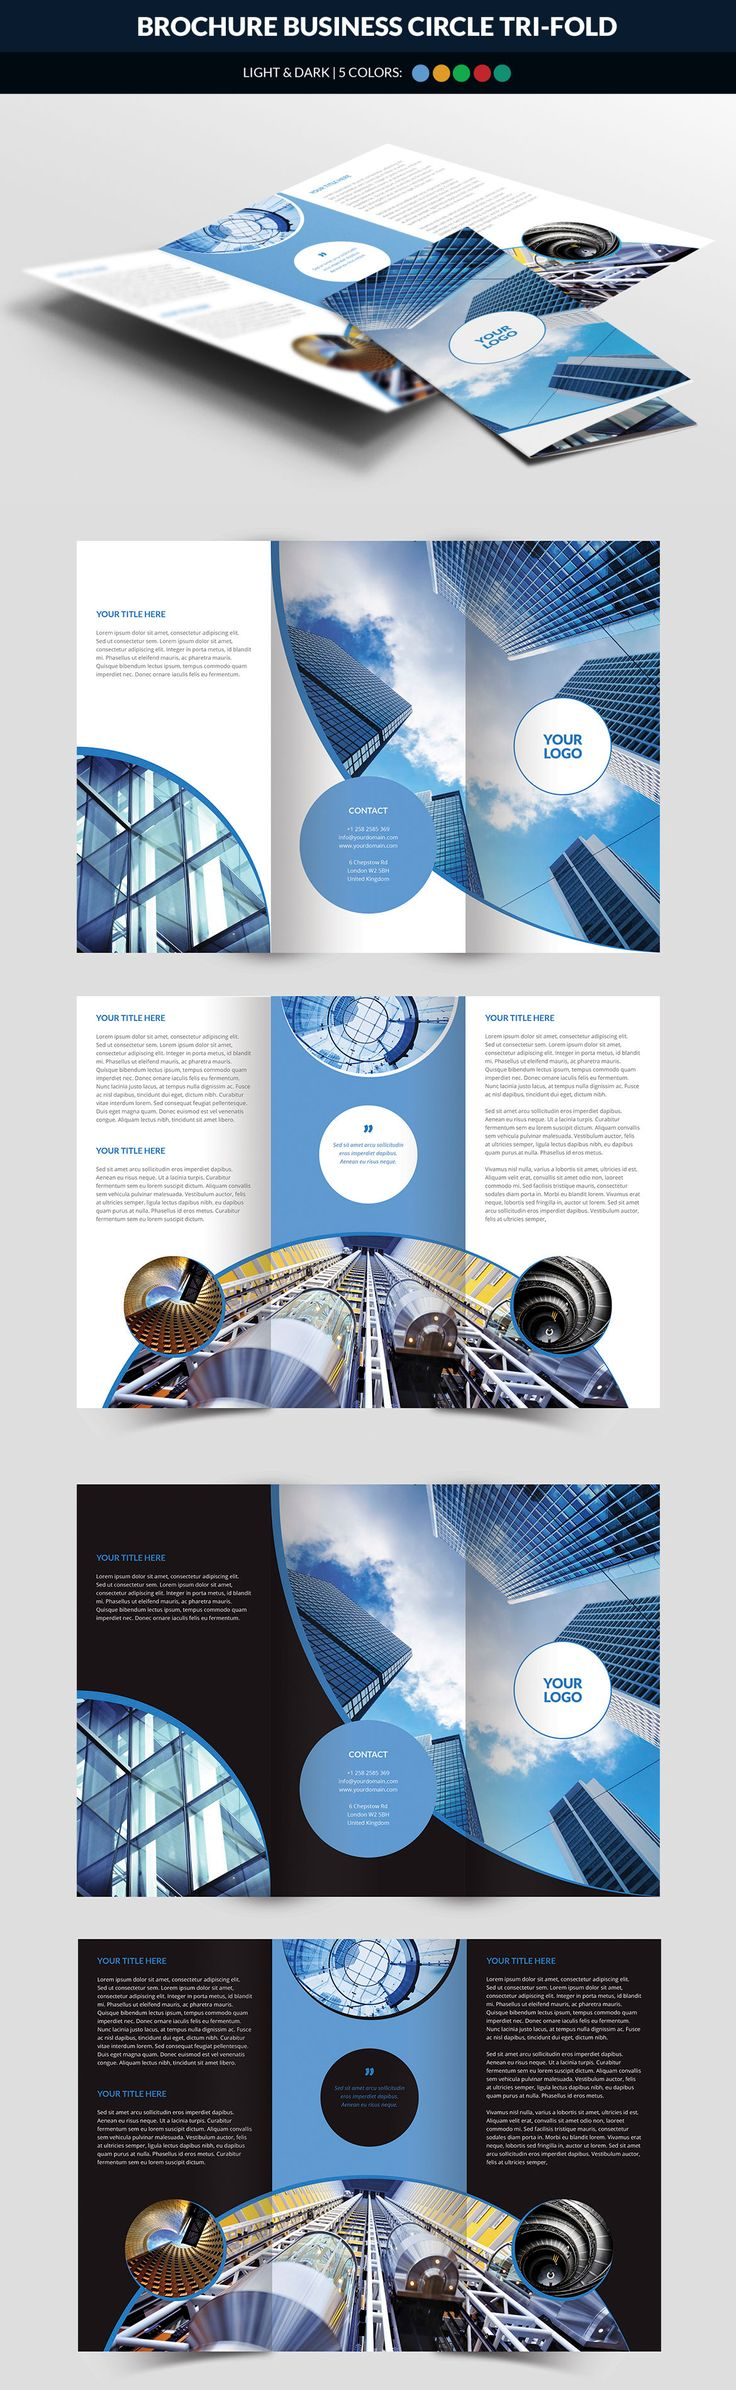 Great 1 Page Website Template Tall 1 Week Calendar Template Flat 10 Envelope Template 2 Circle Label Template Young 2 Page Resume Format Header Gray20 Piece Puzzle Template 25  Best Ideas About Tri Fold On Pinterest | Tri Fold Brochure ..